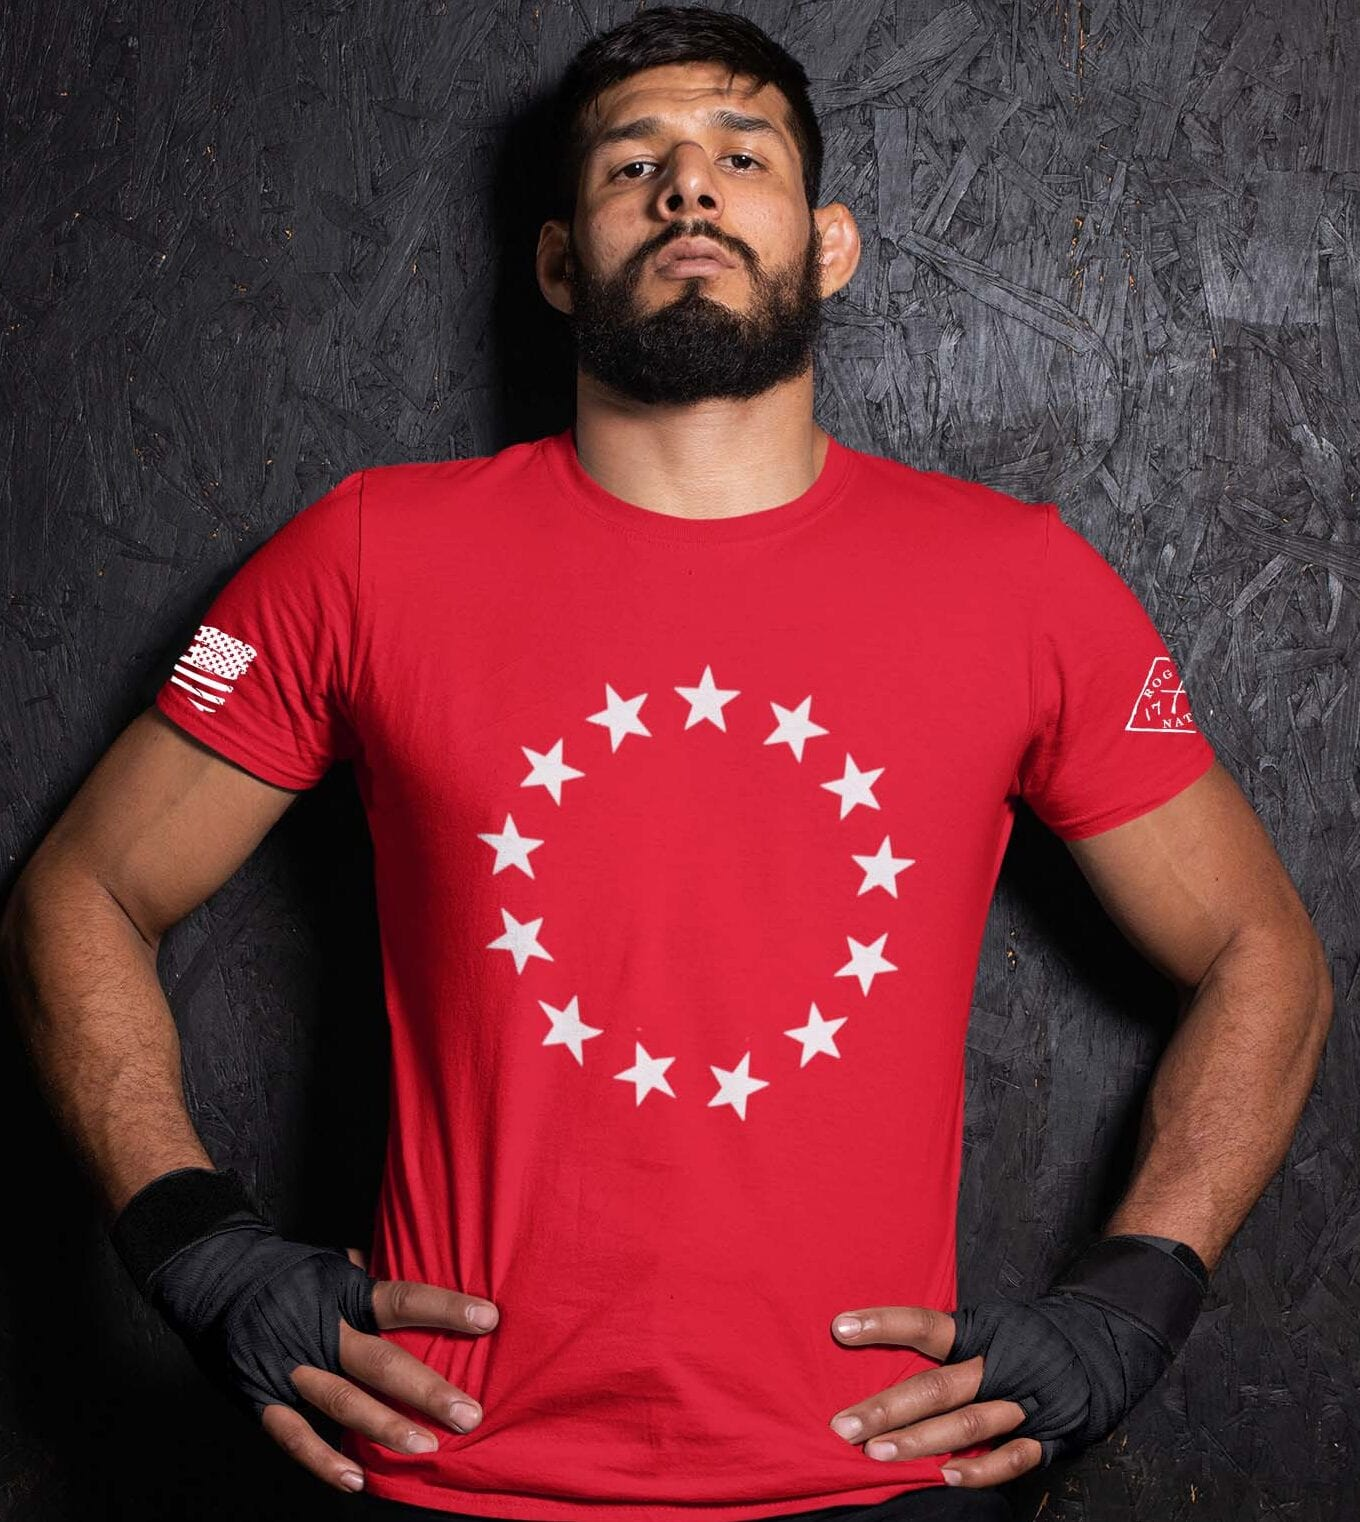 Betsy Stars on a Mens Red t-shirt